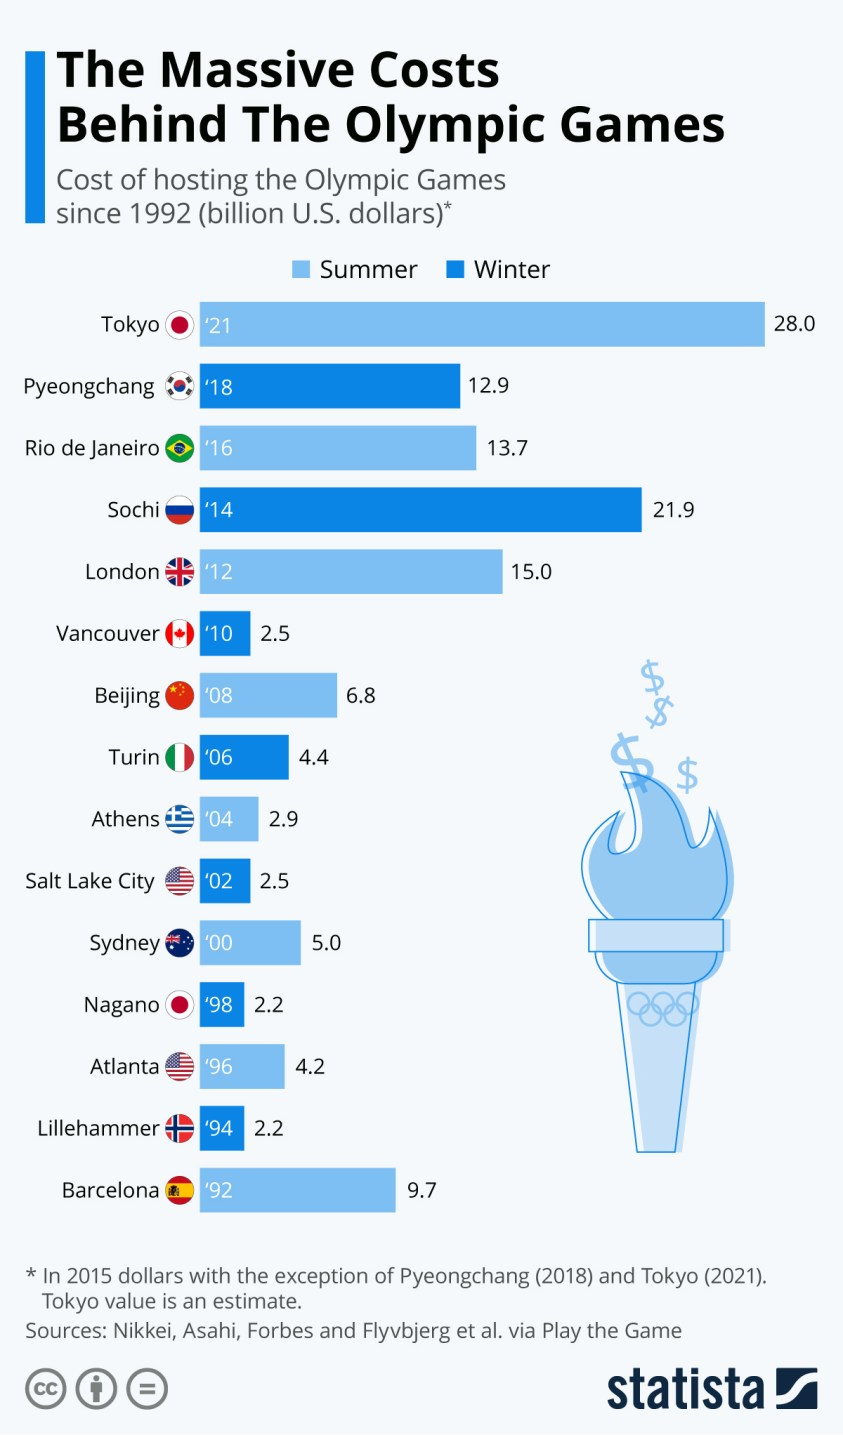 The Massive Costs Behind The Olympic Games